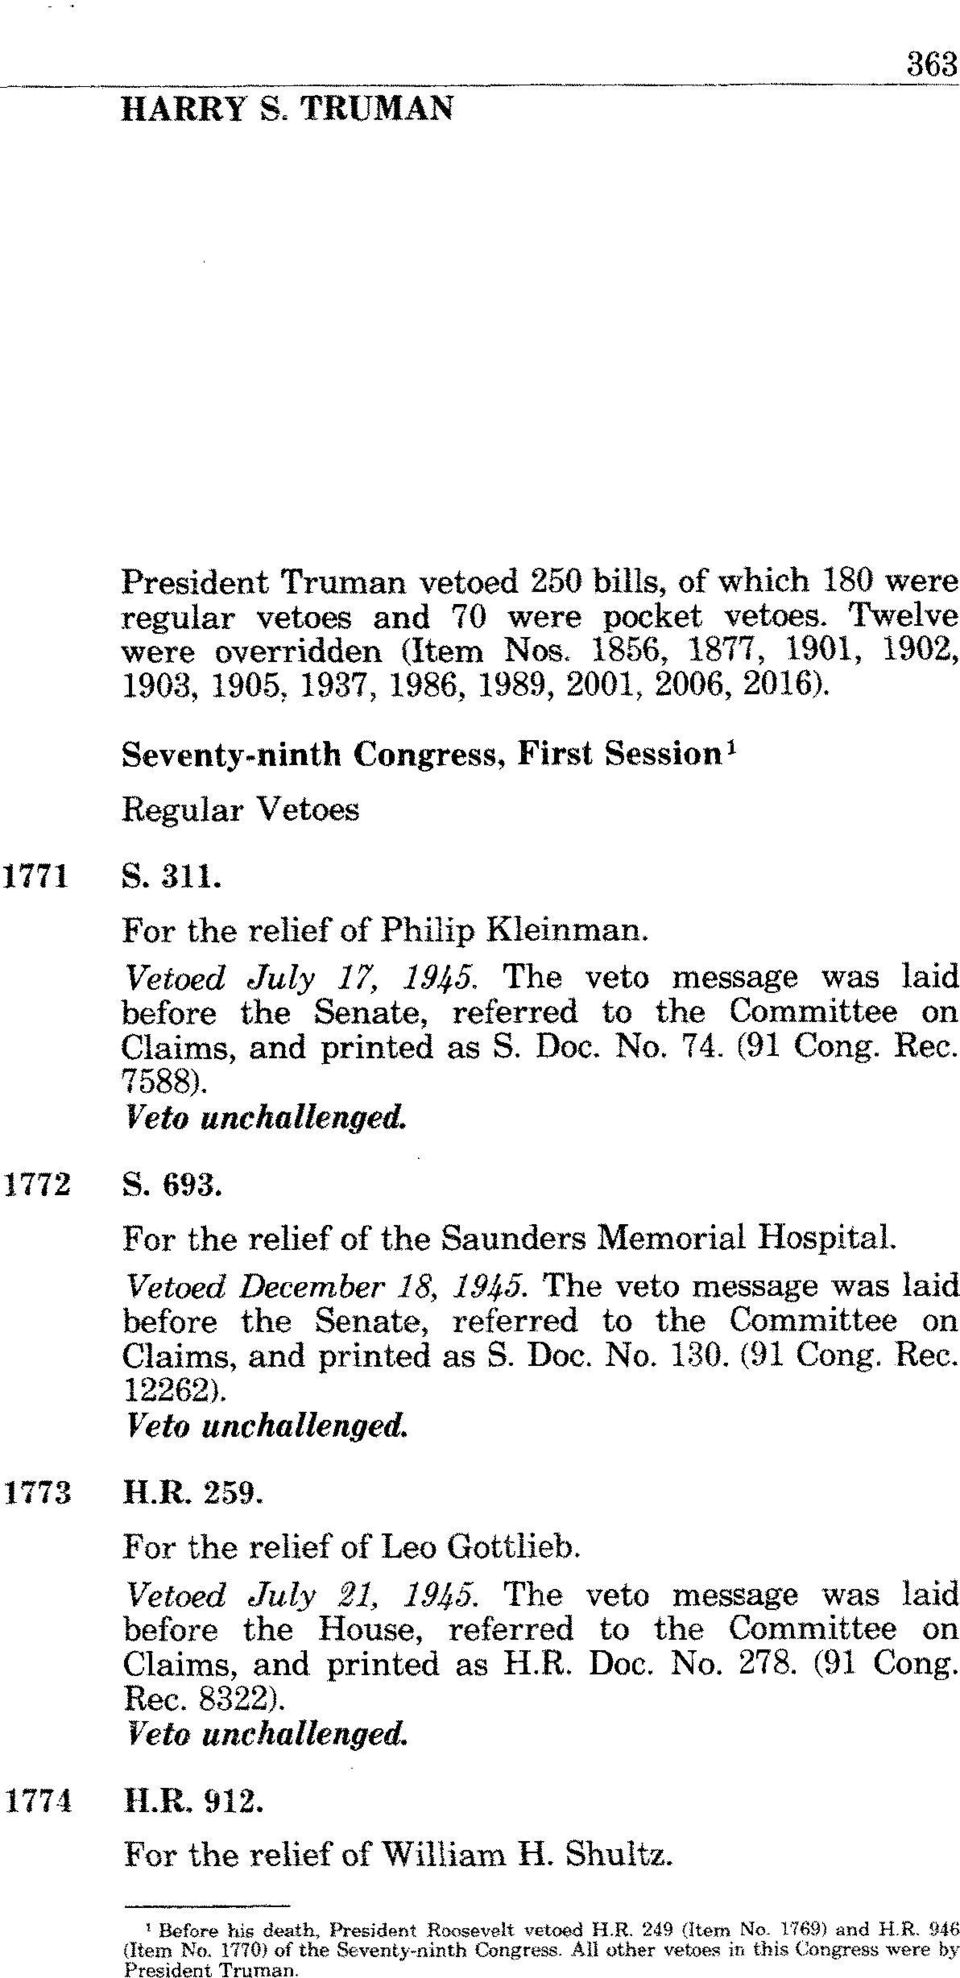 referred to the Committee on Claims, and printed as S. Doc. No. 74. (91 Cong. Rec. 1588). Veto ~nc~ullenge~. 1772 S. 693. For the relief of the Saunders Memorial Hospital. Vetoed December 18, 1945.